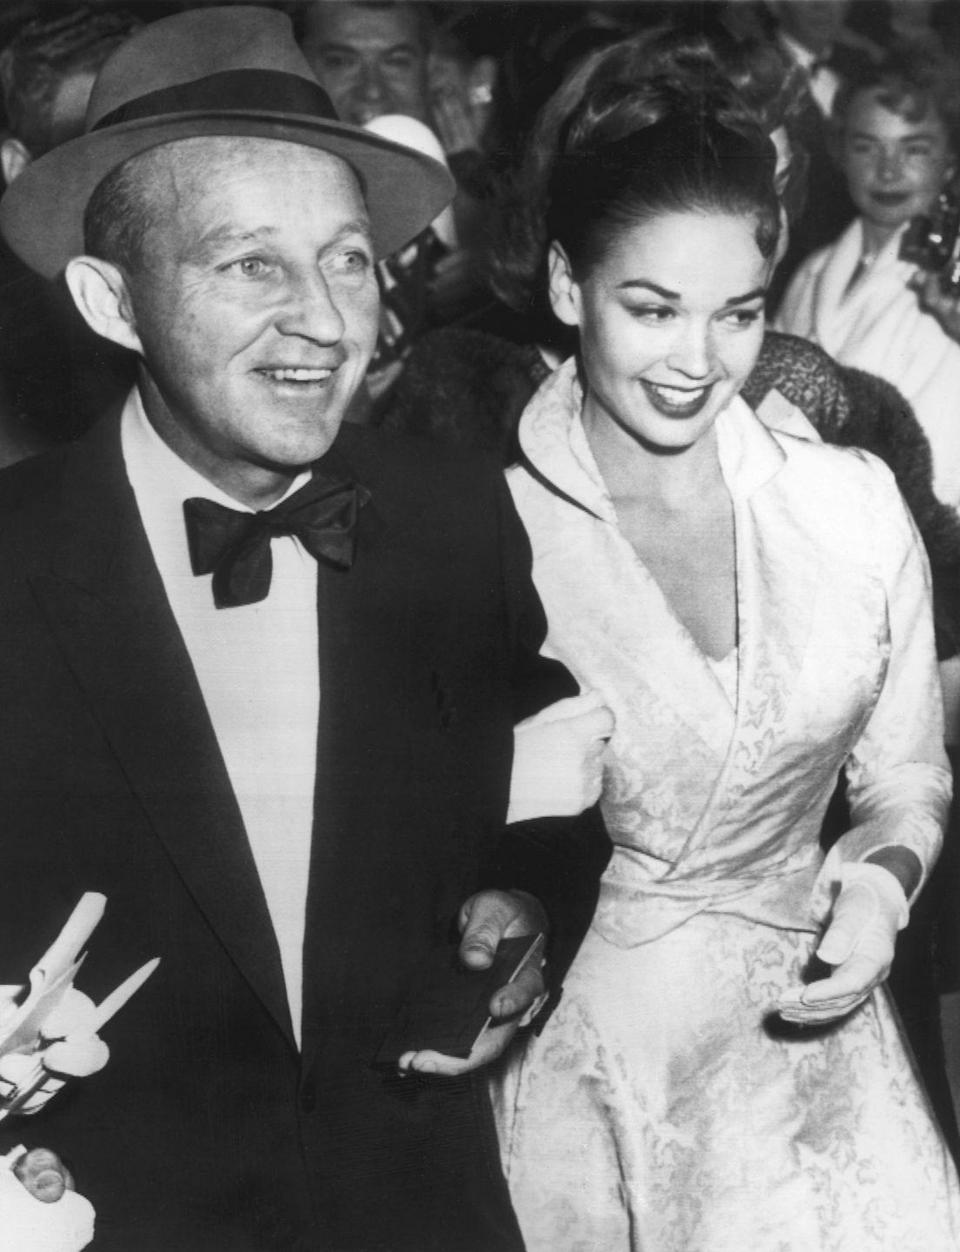 <p>Bing Crosby married his second wife, actress Kathryn Grant, in 1957. They were married for 20 years, despite a nearly 30-year age difference. </p>